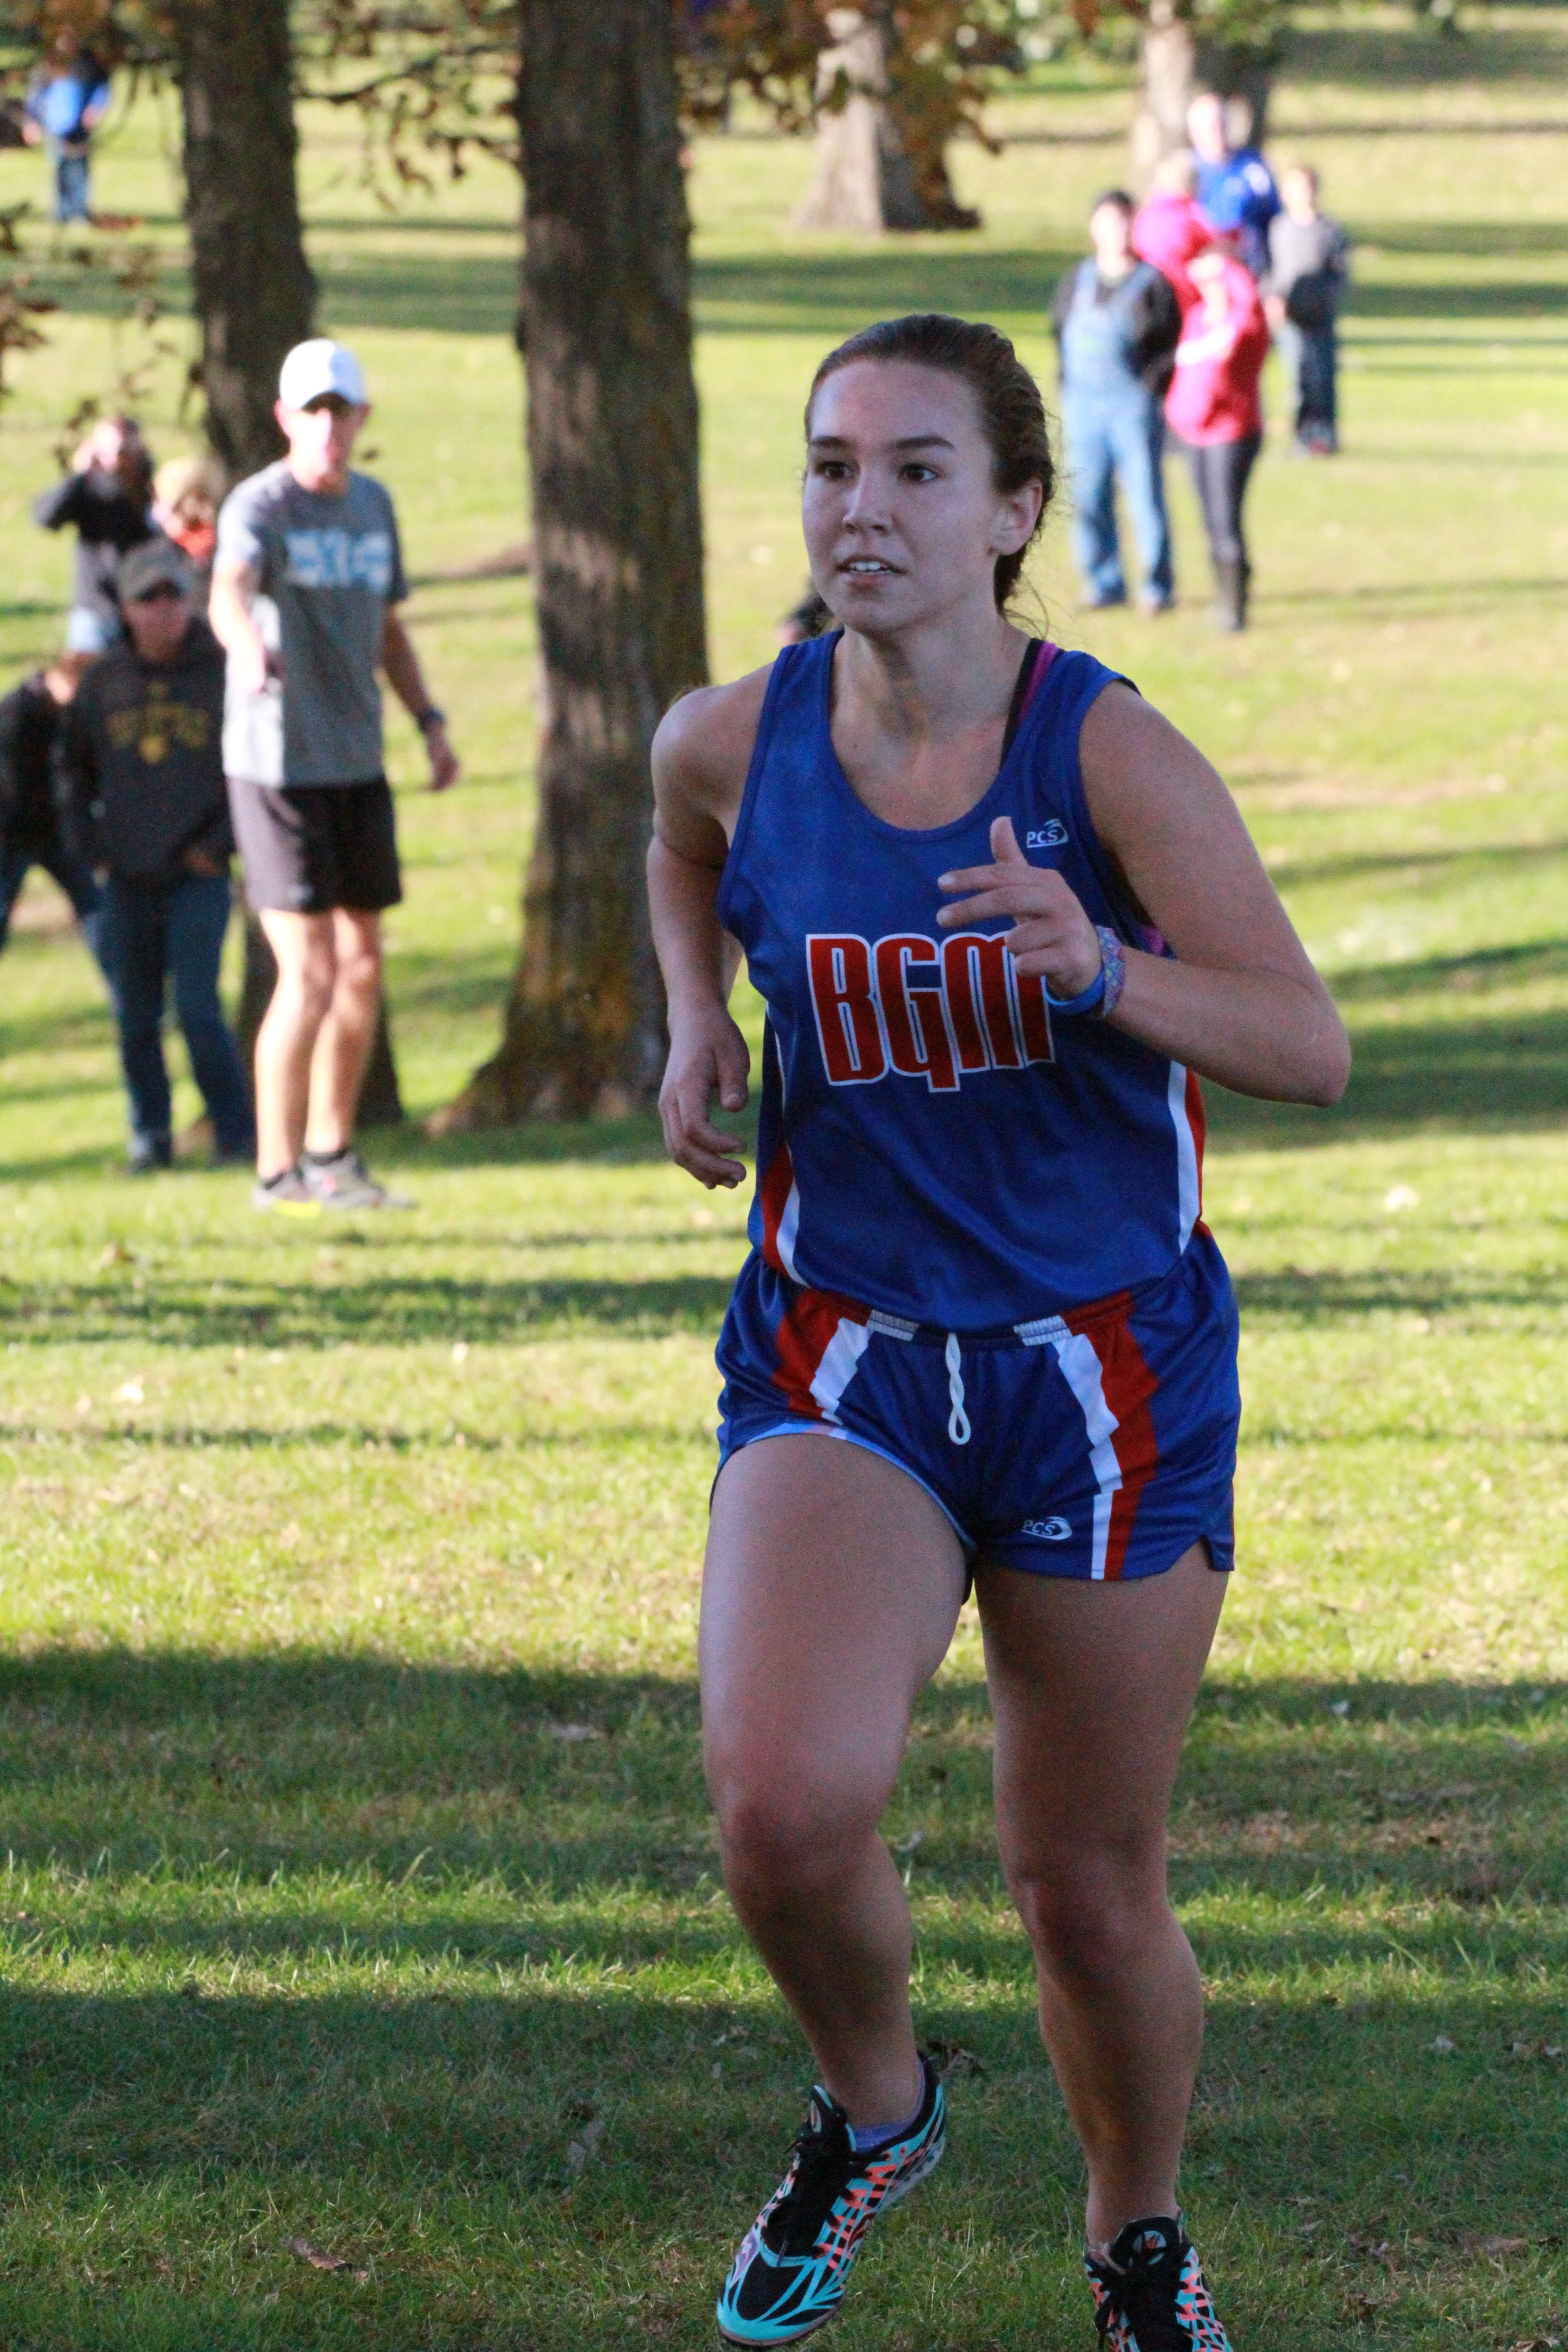 Mollie leads her team to third place in a high school cross country meet.